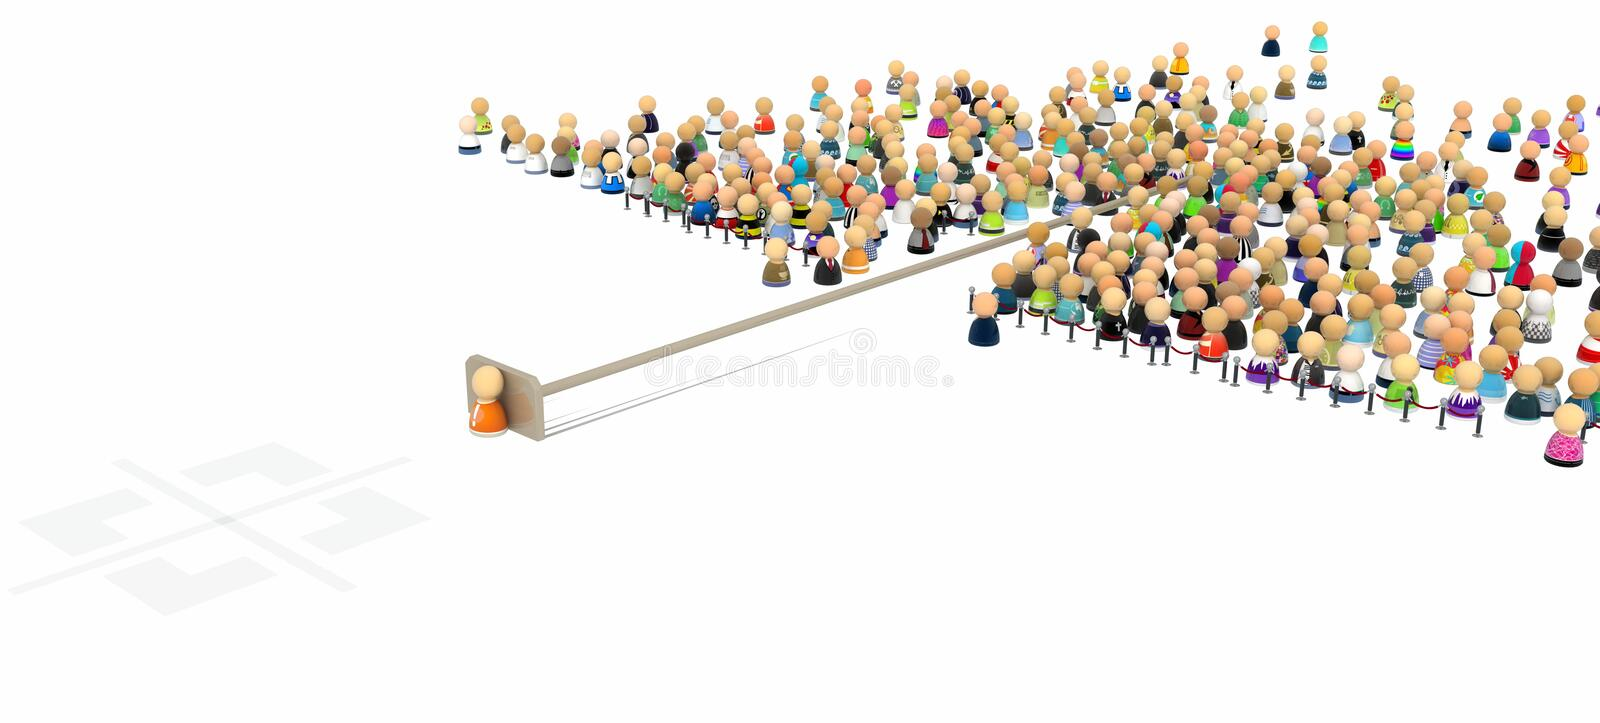 Download Cartoon Crowd, Pushed Out stock illustration. Illustration of bunch - 17188665